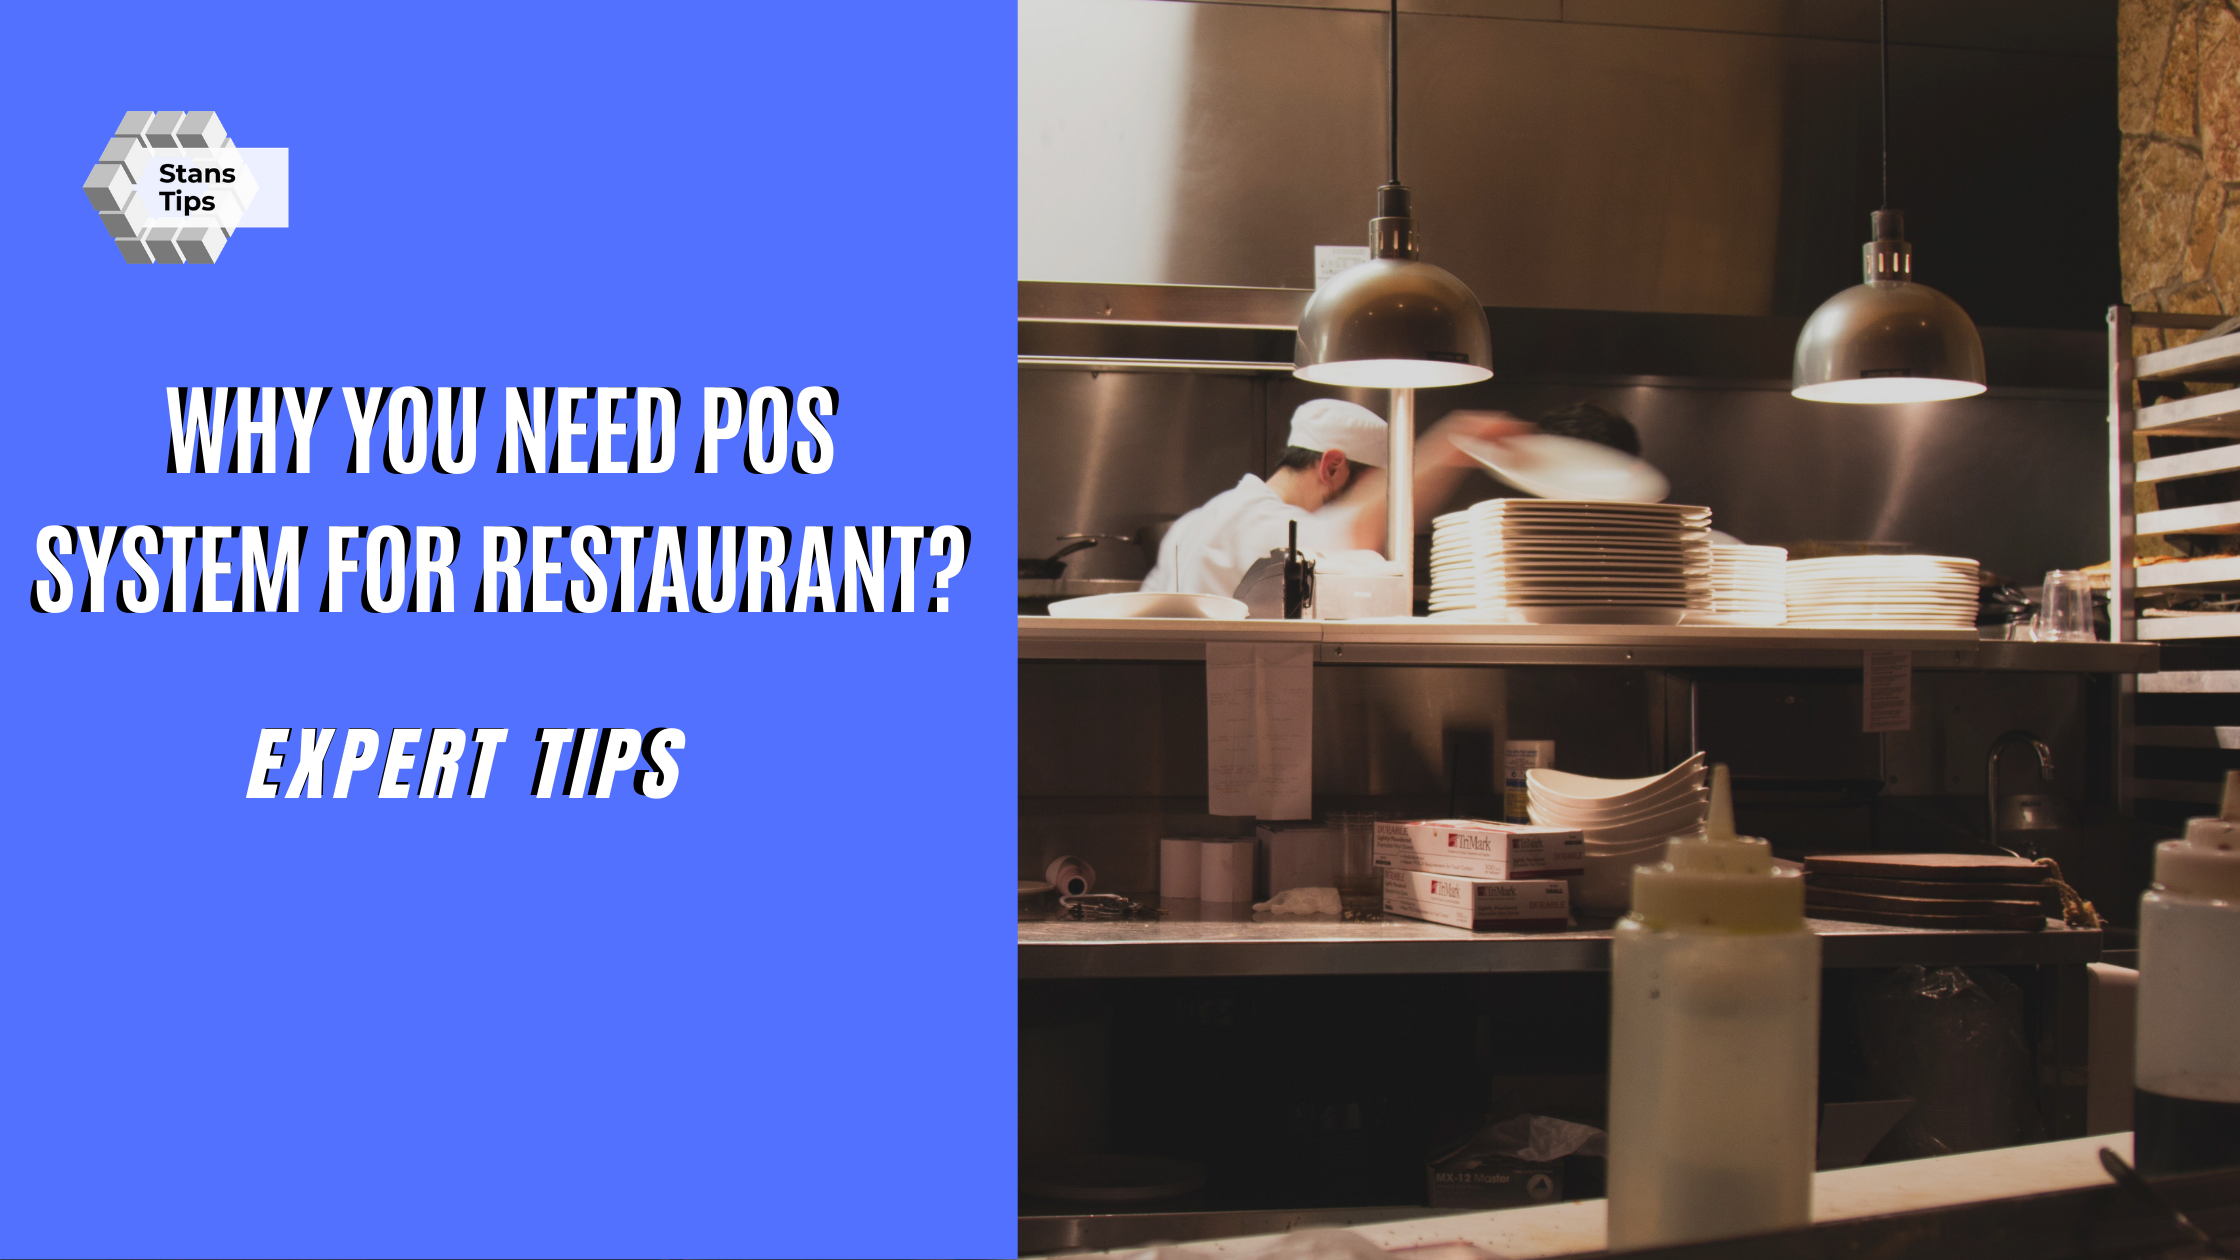 Why You Need POS System For Restaurant